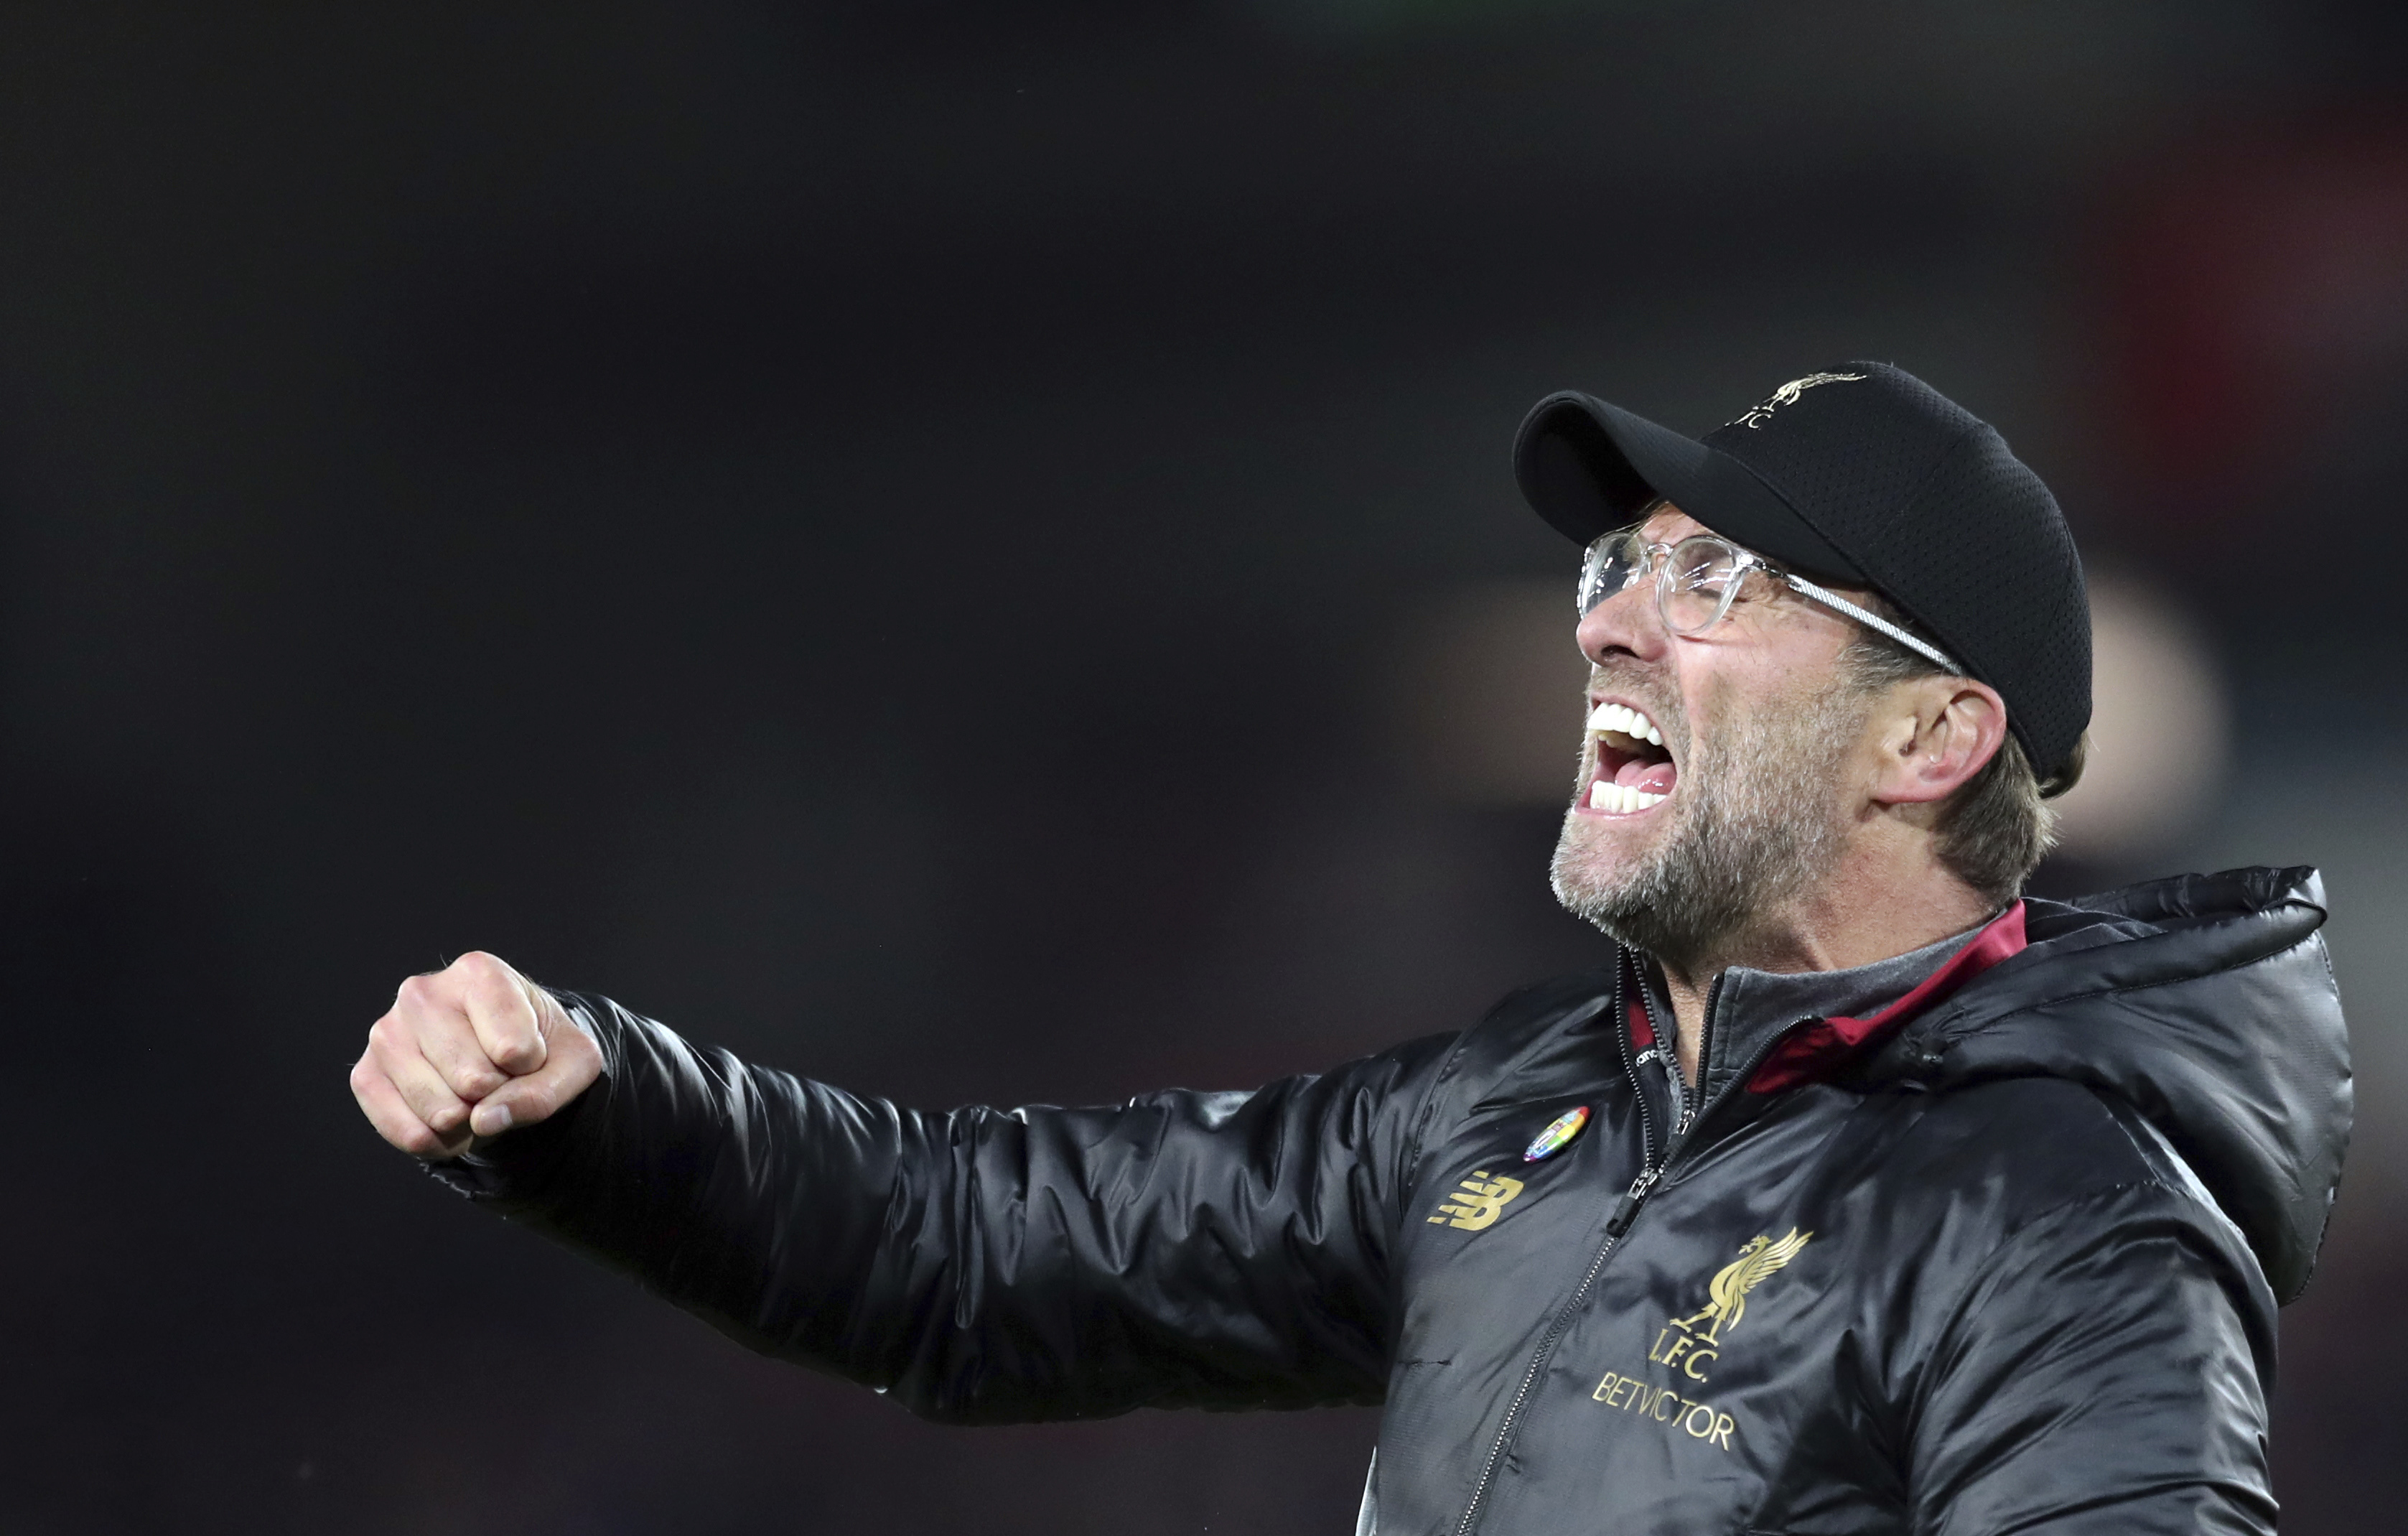 Liverpool coach Juergen Klopp celebrates after Liverpool forward Divock Origi scored his side's first goal during the English Premier League soccer match between Liverpool and Everton at Anfield Stadium in Liverpool, England, Sunday, Dec. 2, 2018. (AP Photo/Jon Super)